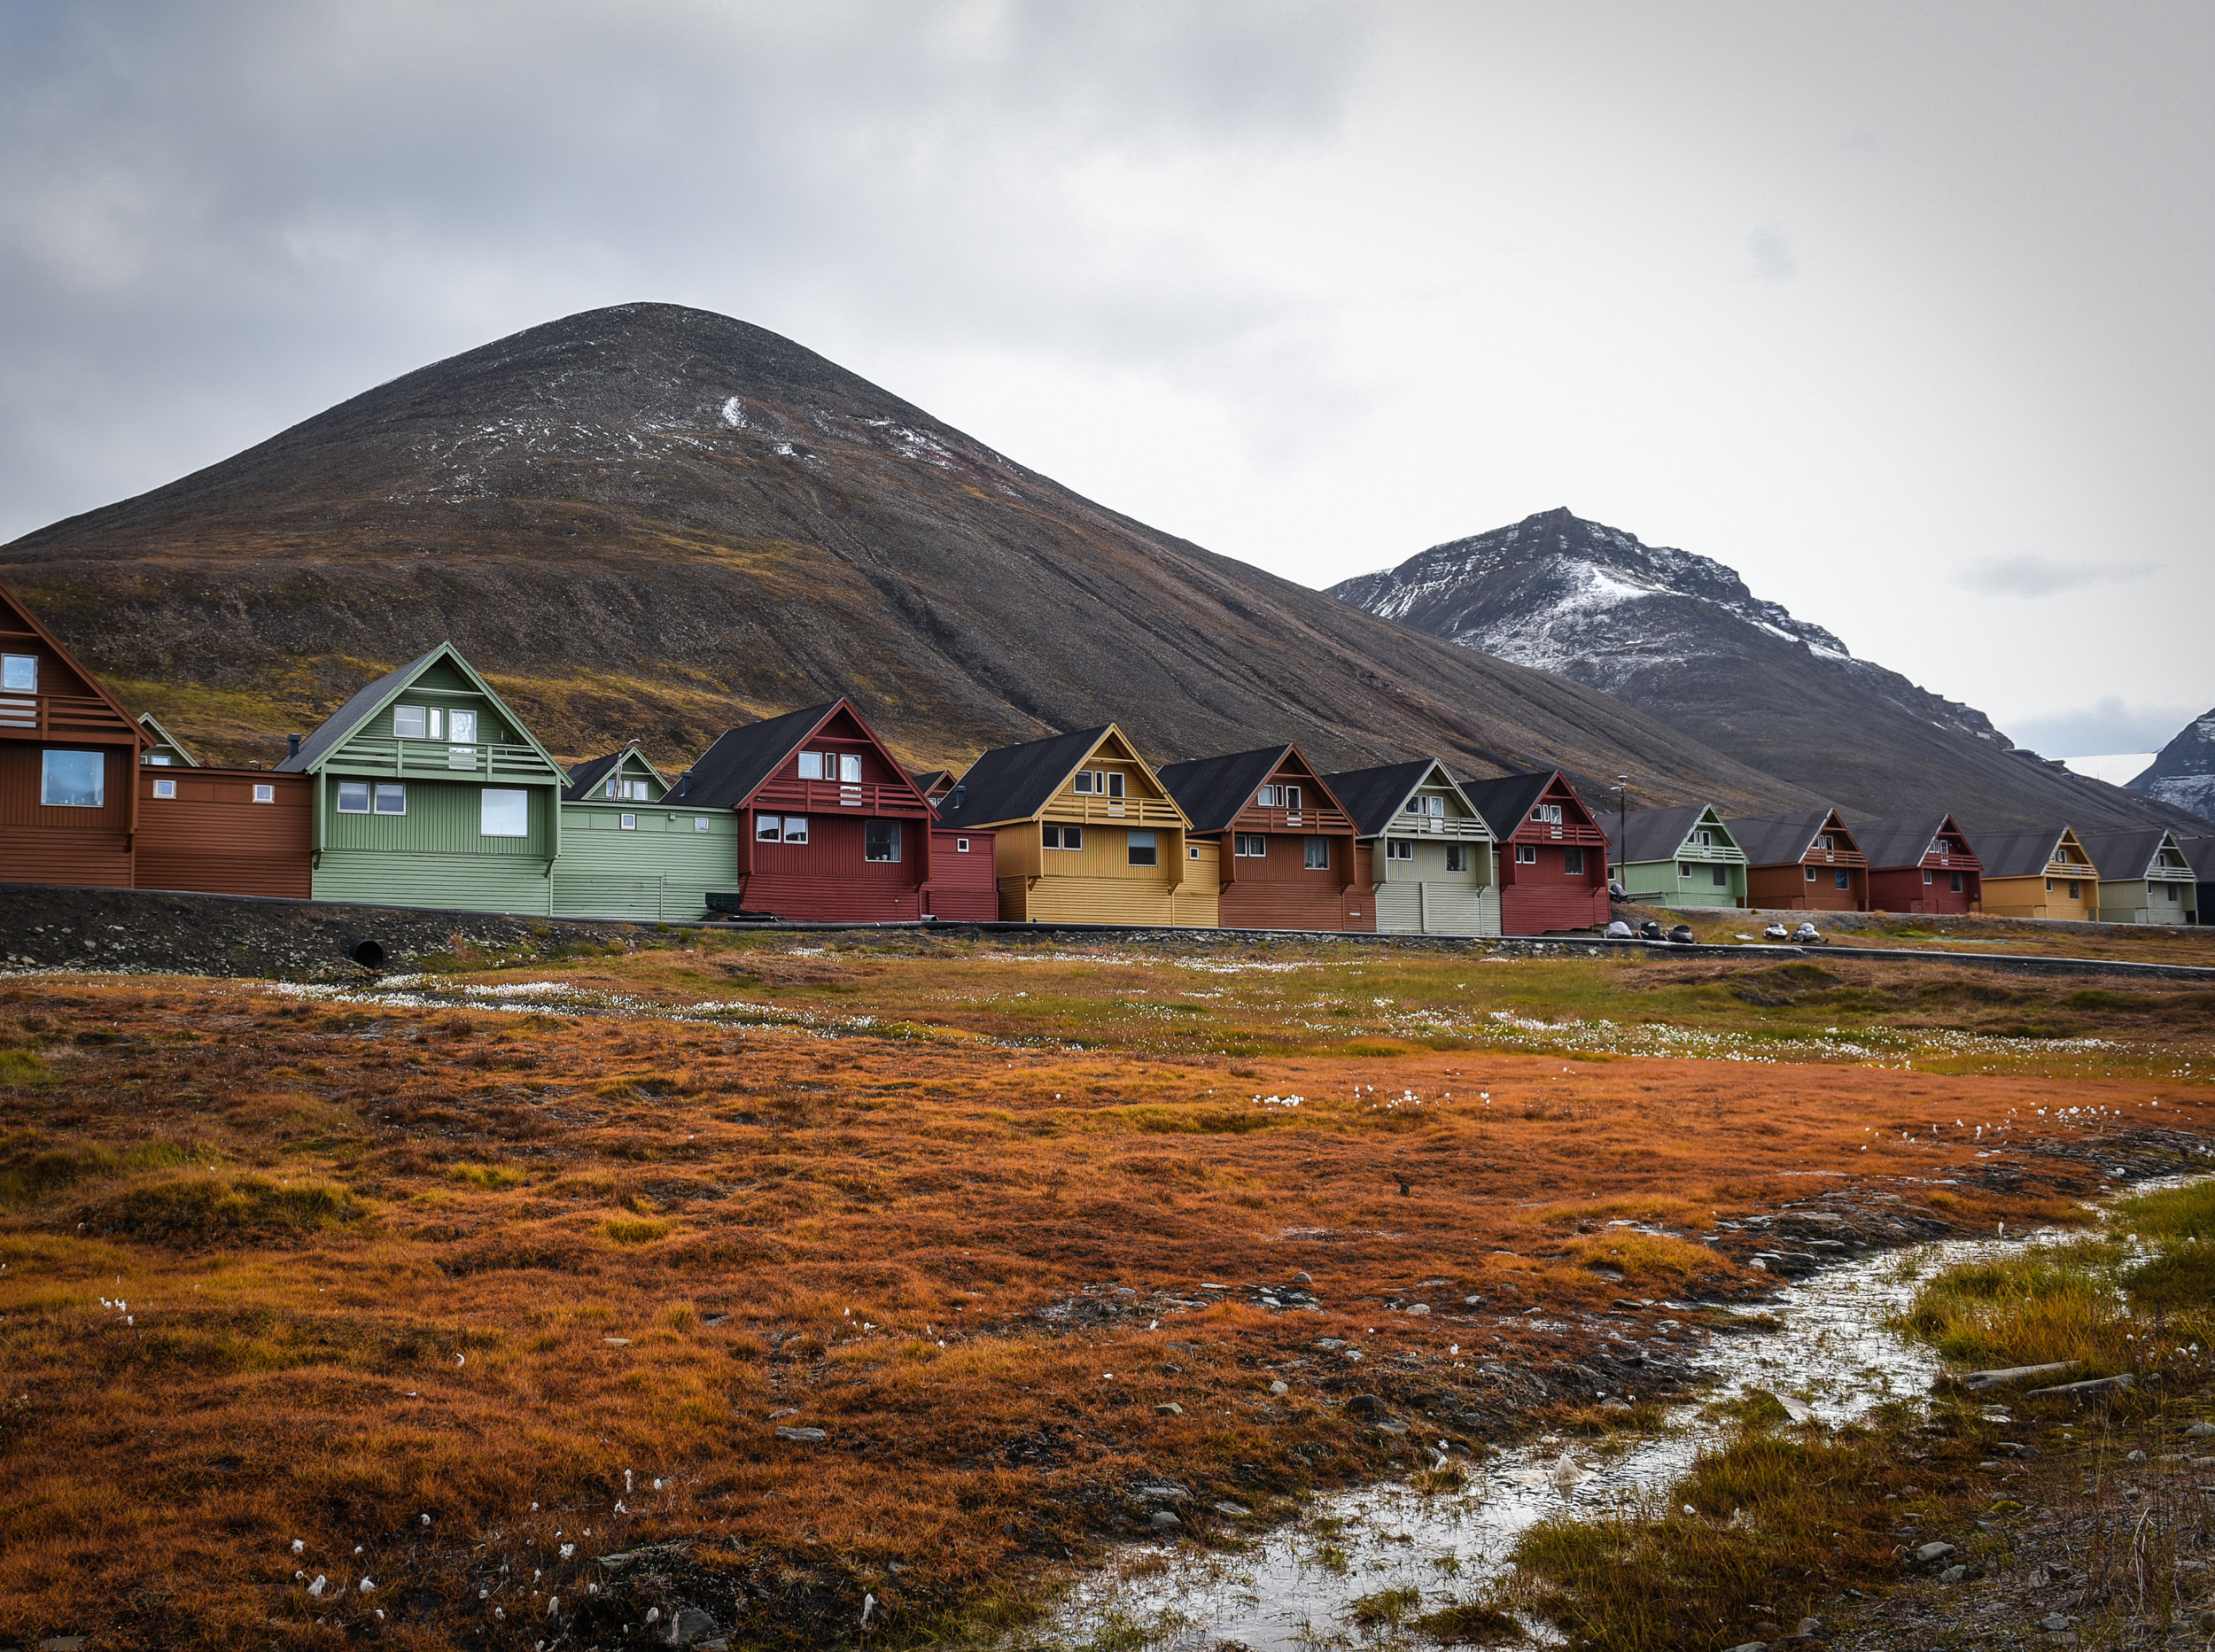 Longyearbyen, Svalbard. Home to a little over 2000 people and the world's northernmost settlement with more than 1000 permanent residents. JONAA@Linnea Nordstrom.